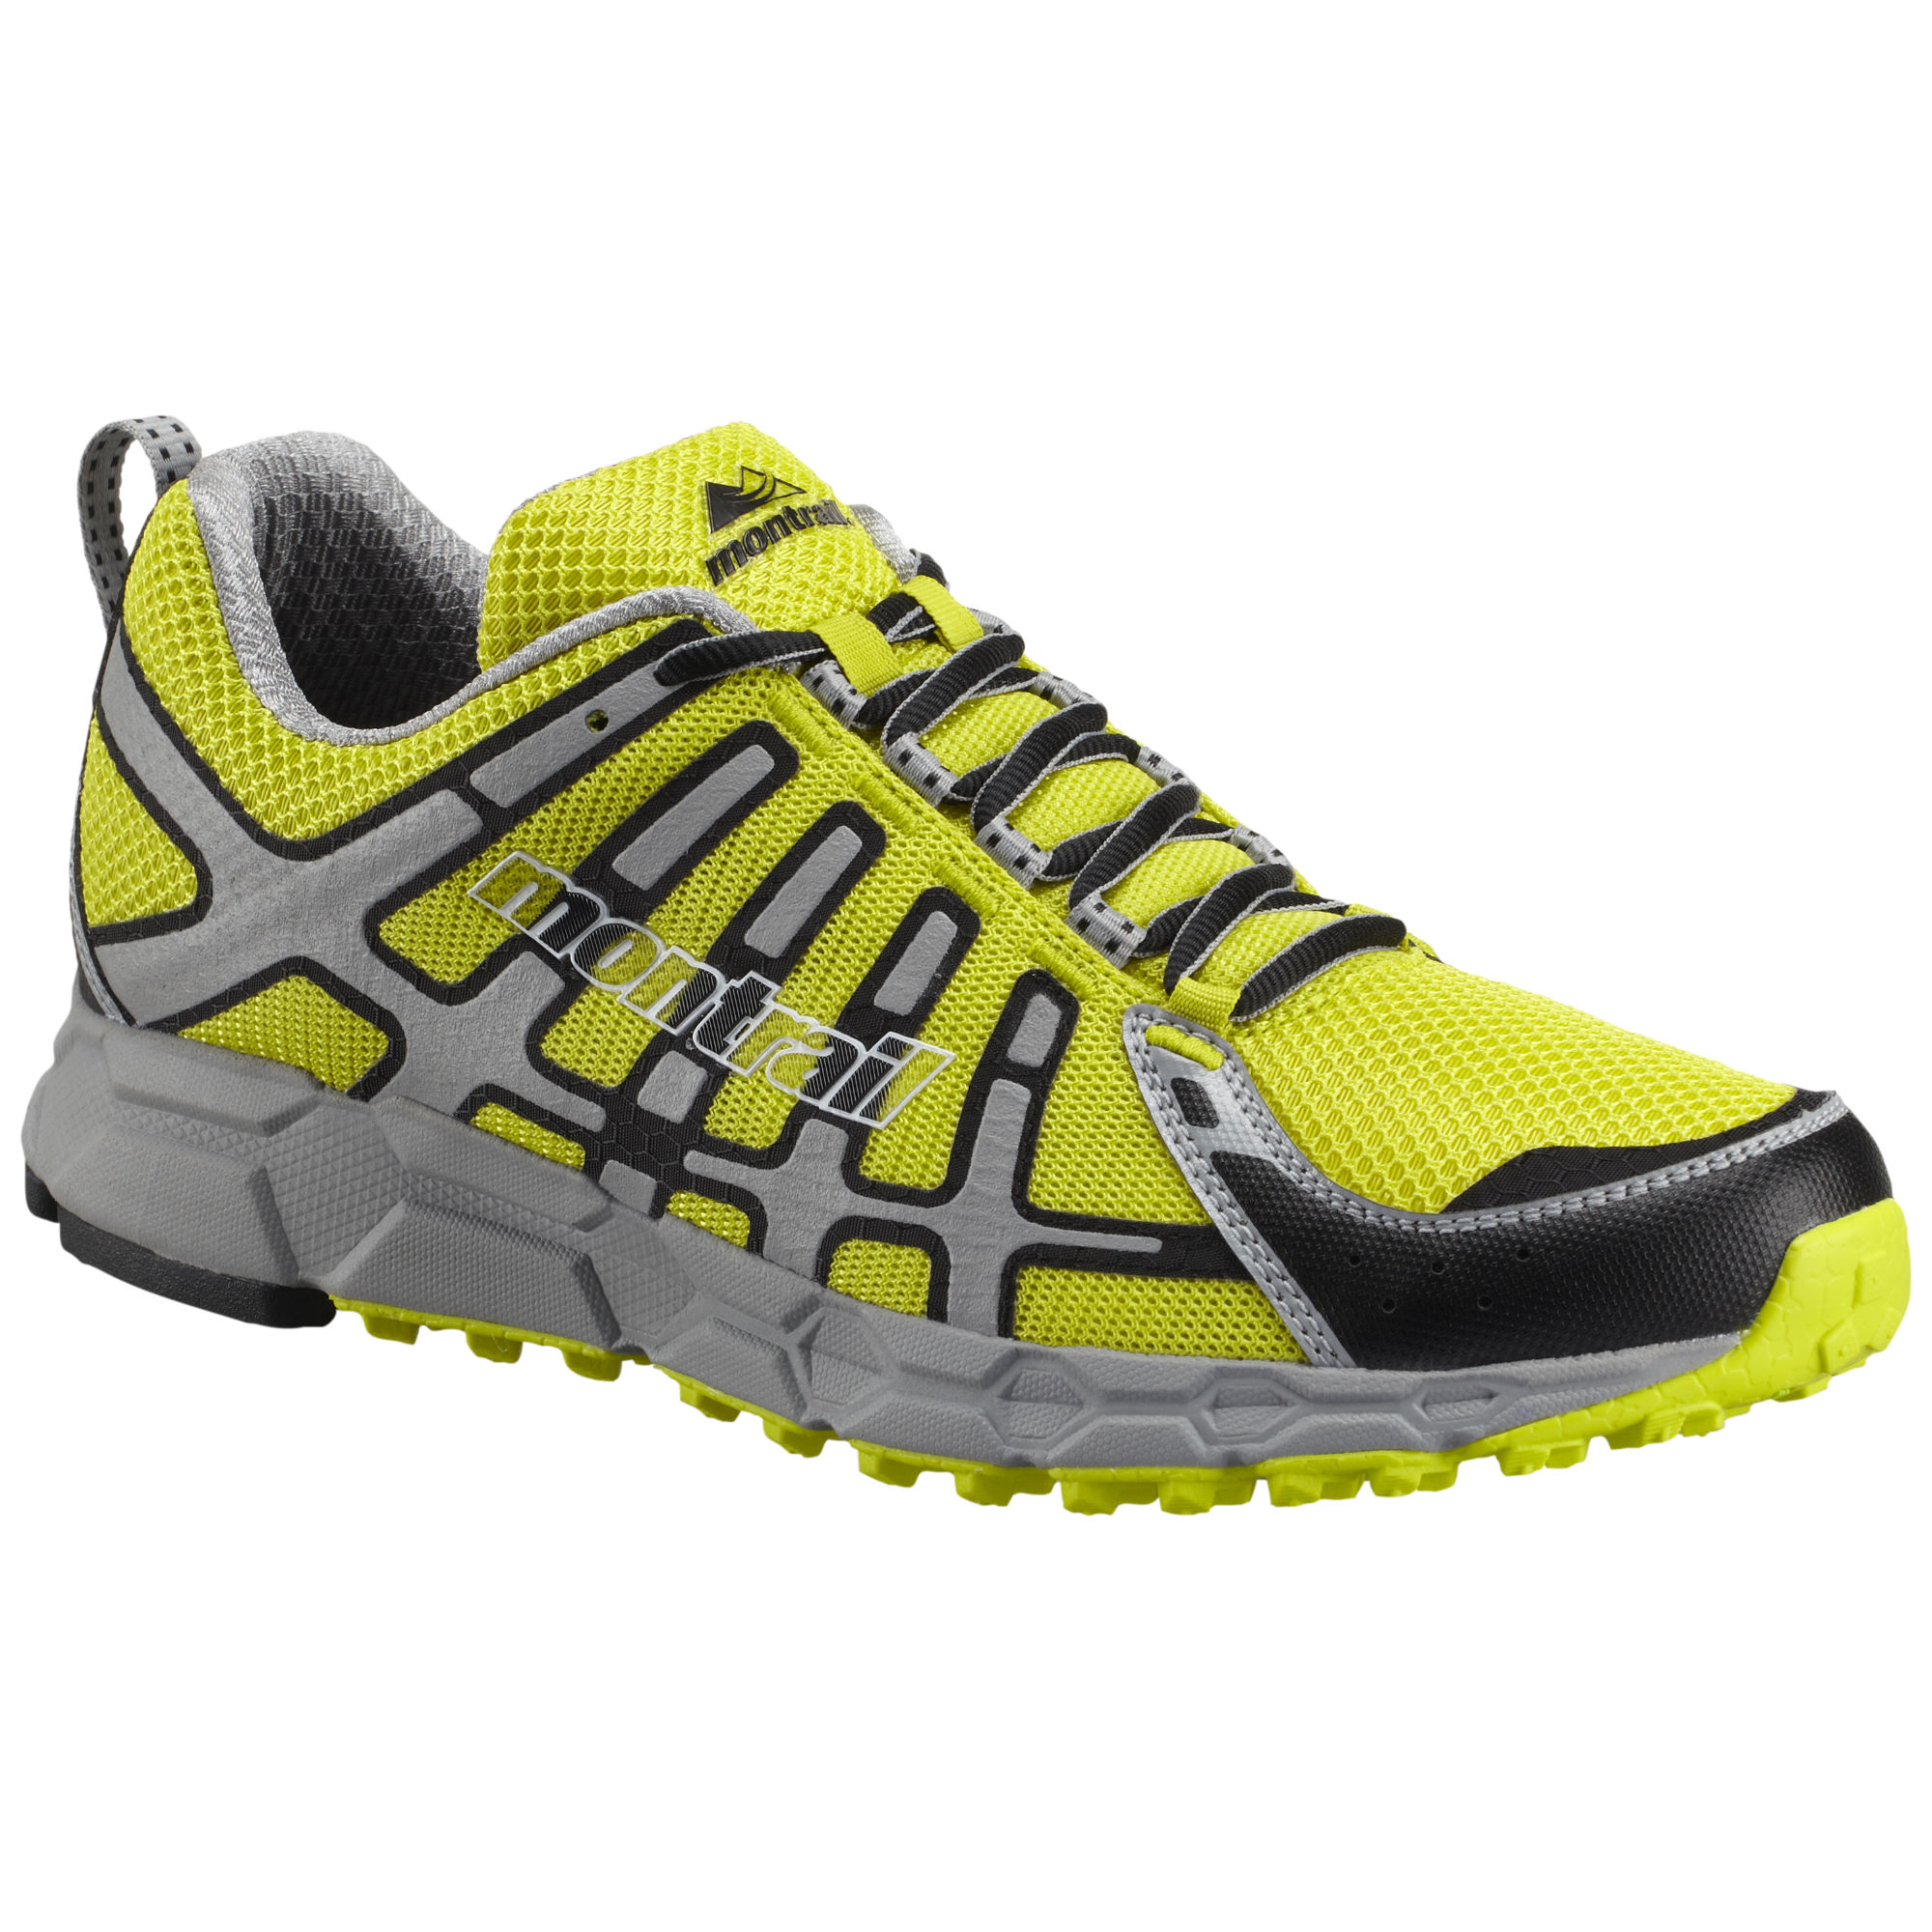 Montrail Bajada Trail Running Shoes